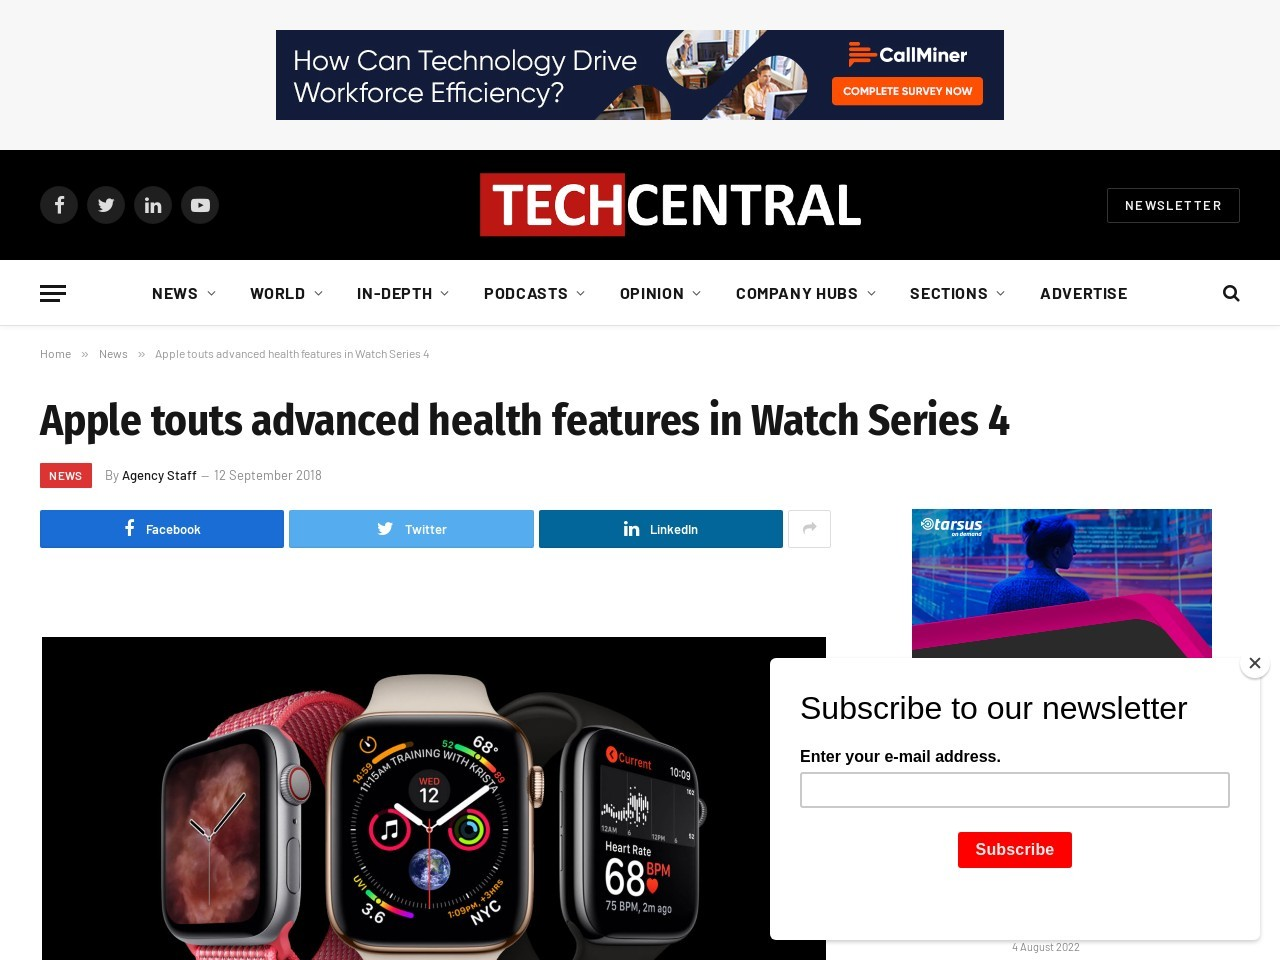 Apple touts advanced health features in Watch Series 4